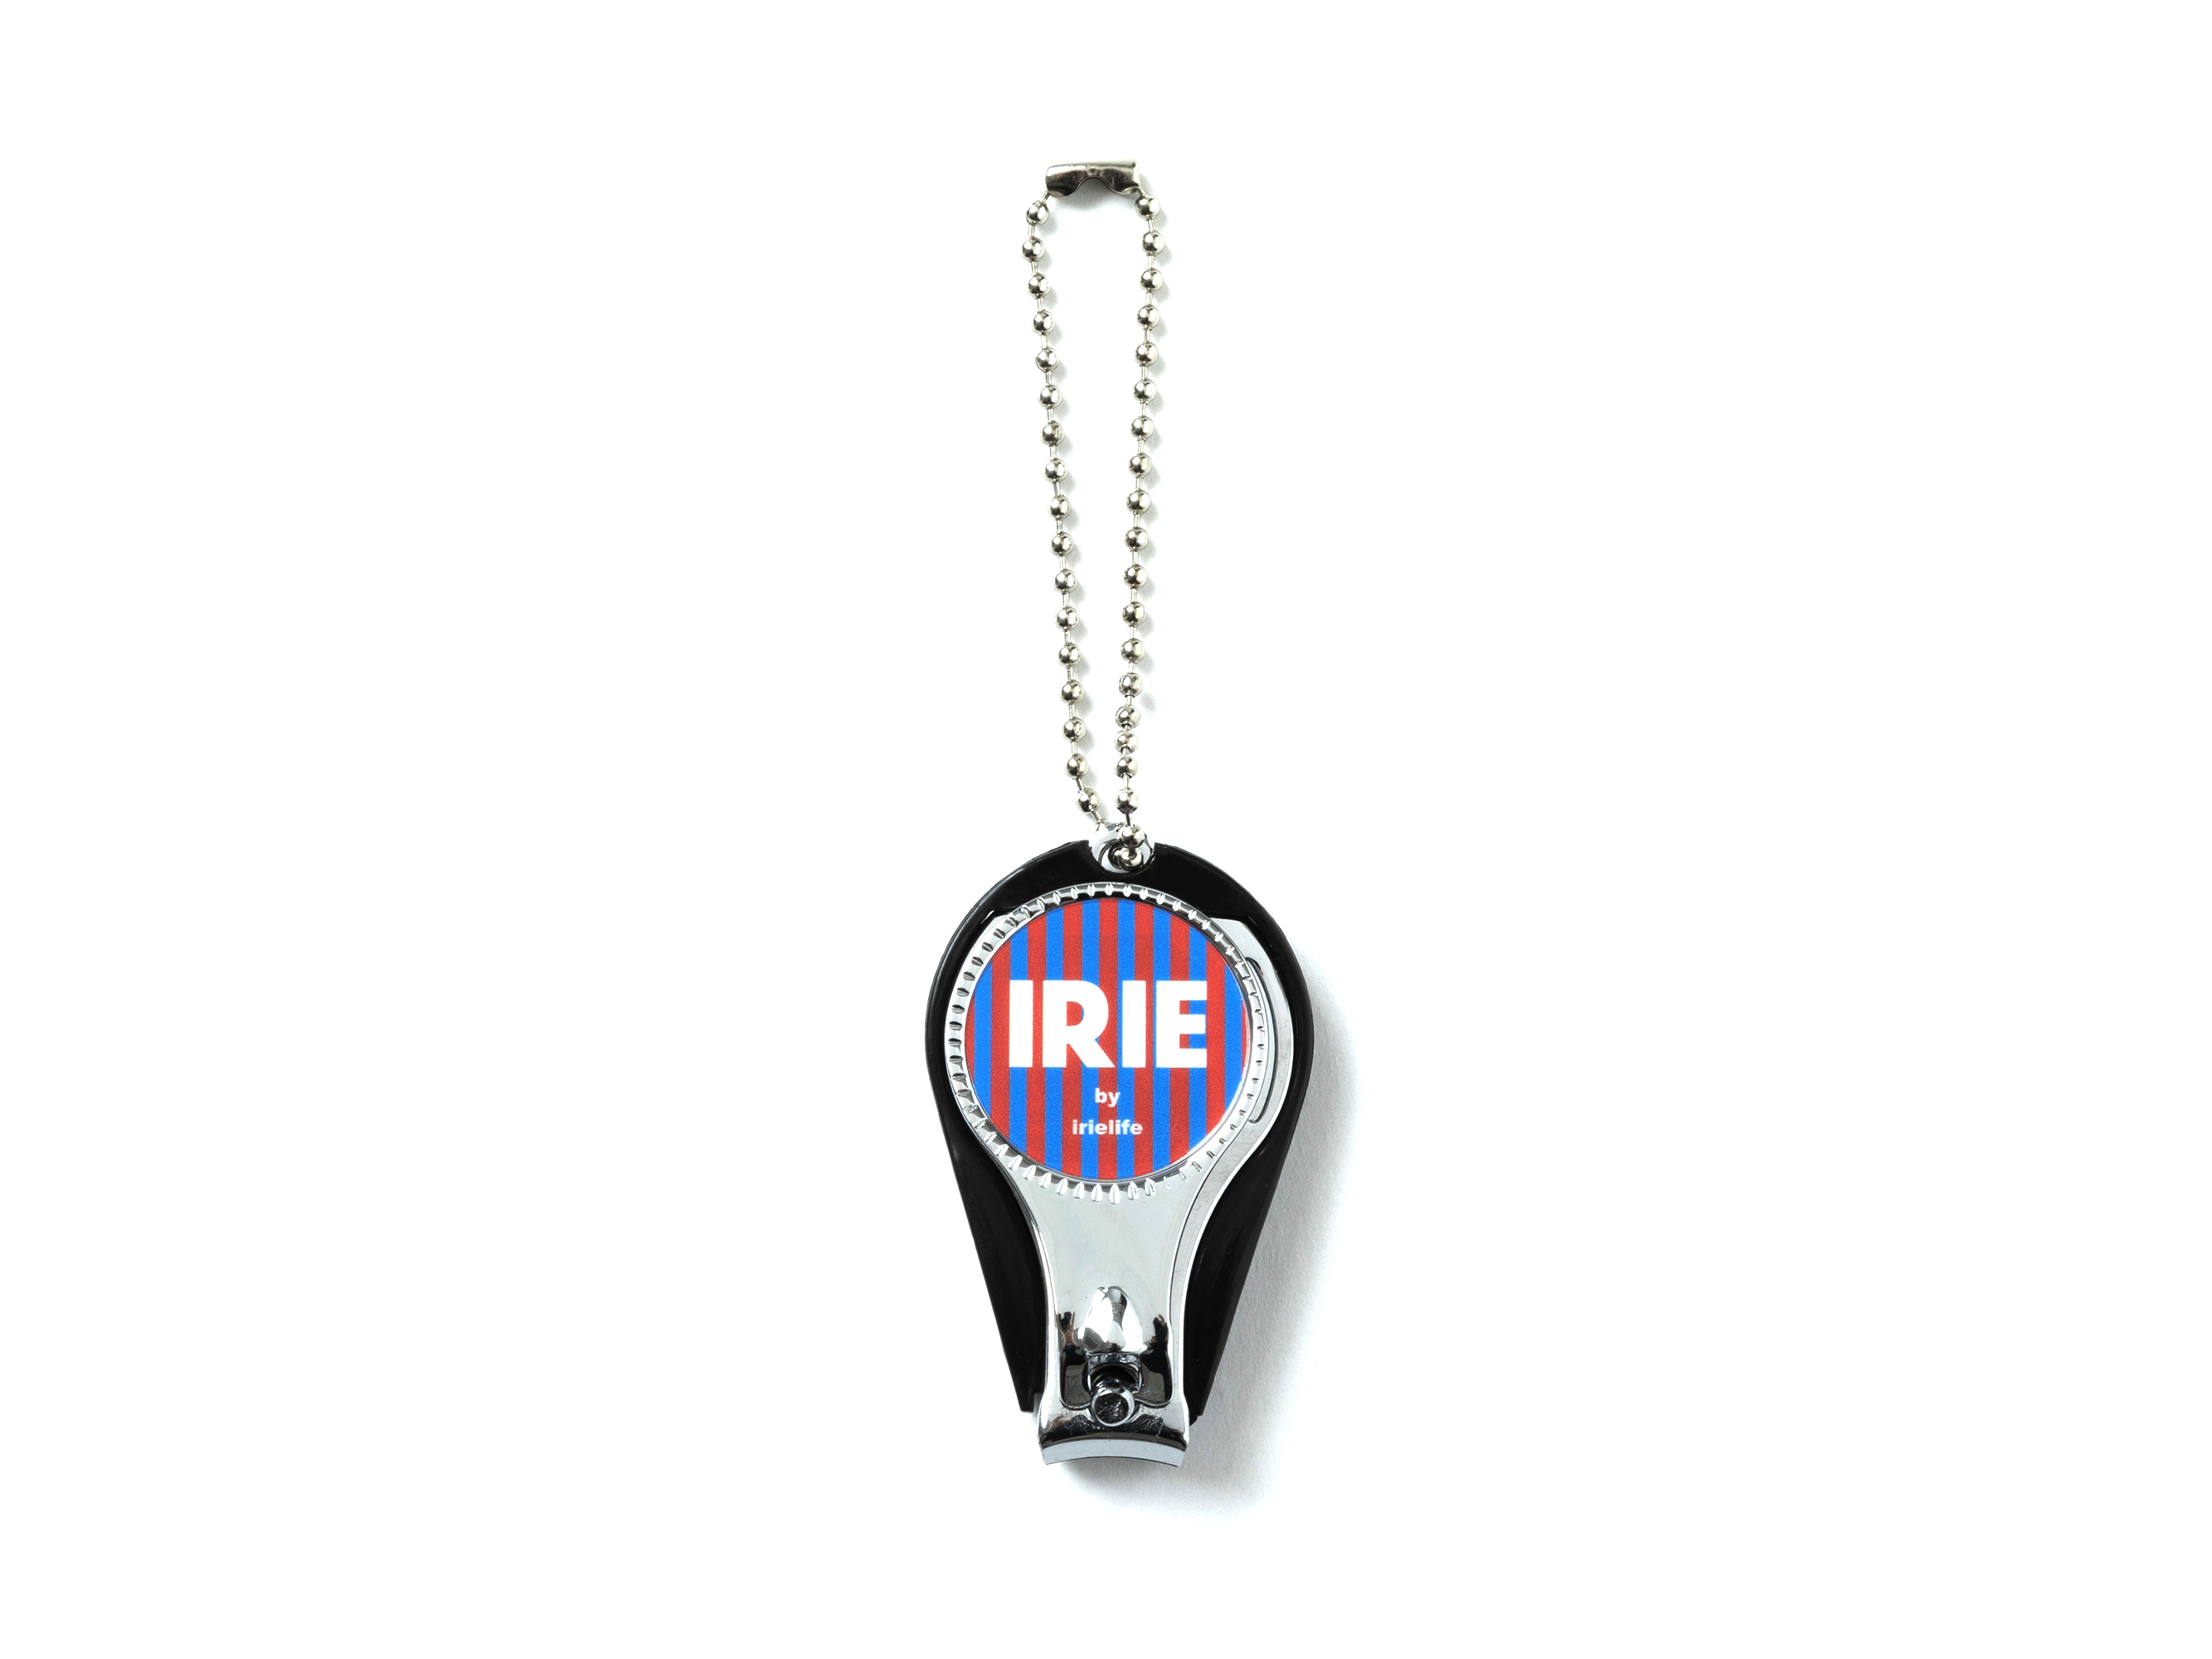 NAIL CRIPPERS KEYHOLDER - IRIE by irielife